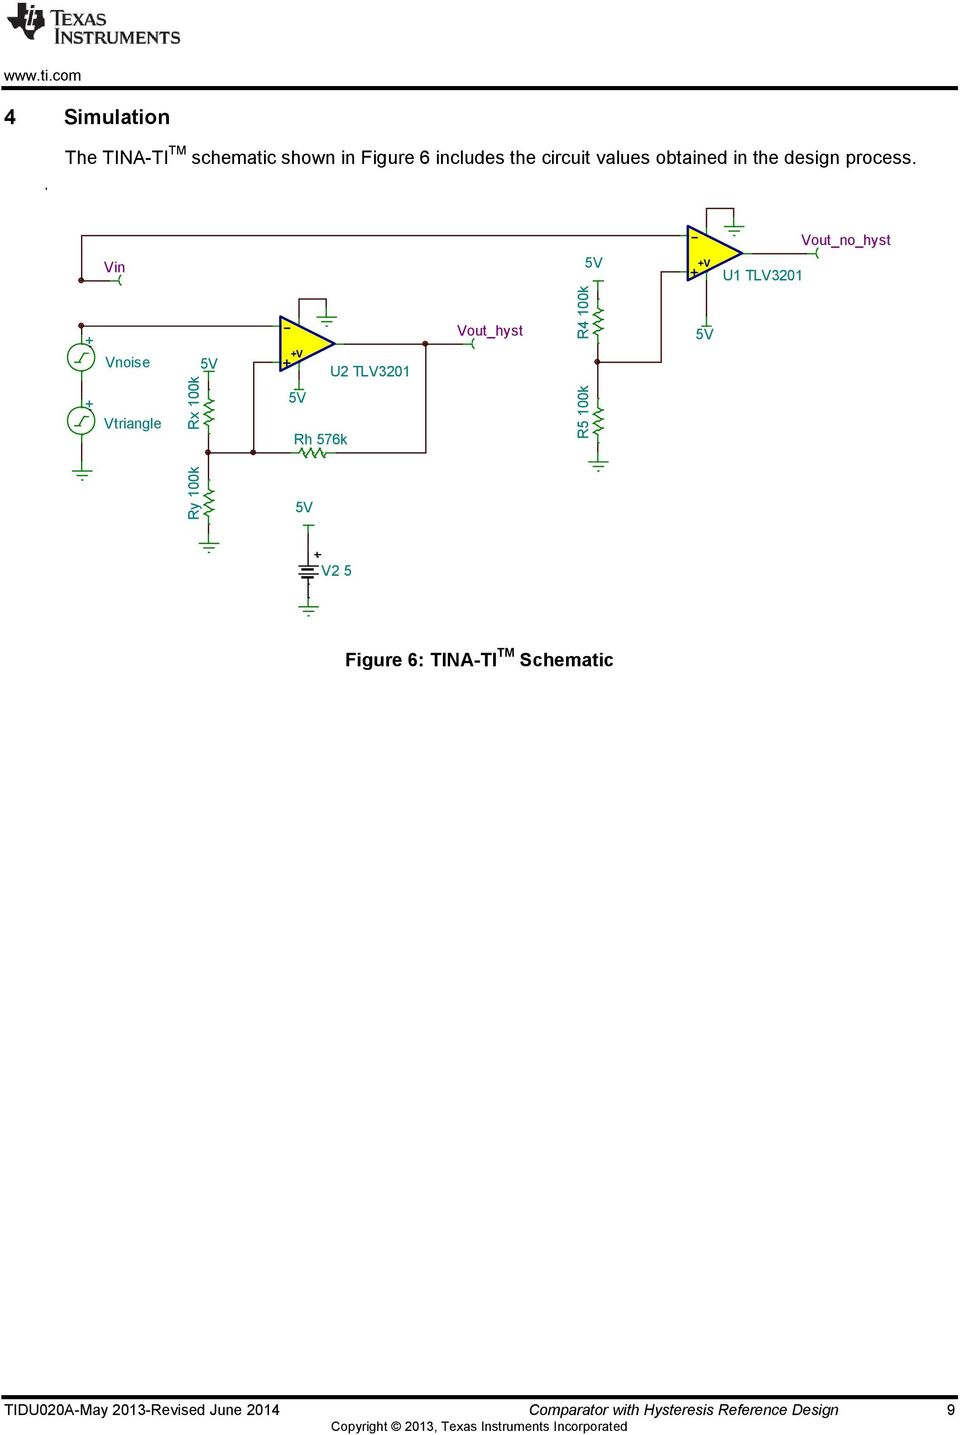 Ti Designs Precision Verified Design Comparator With Hysteresis Figure 5 Circuit Obtained In The Process